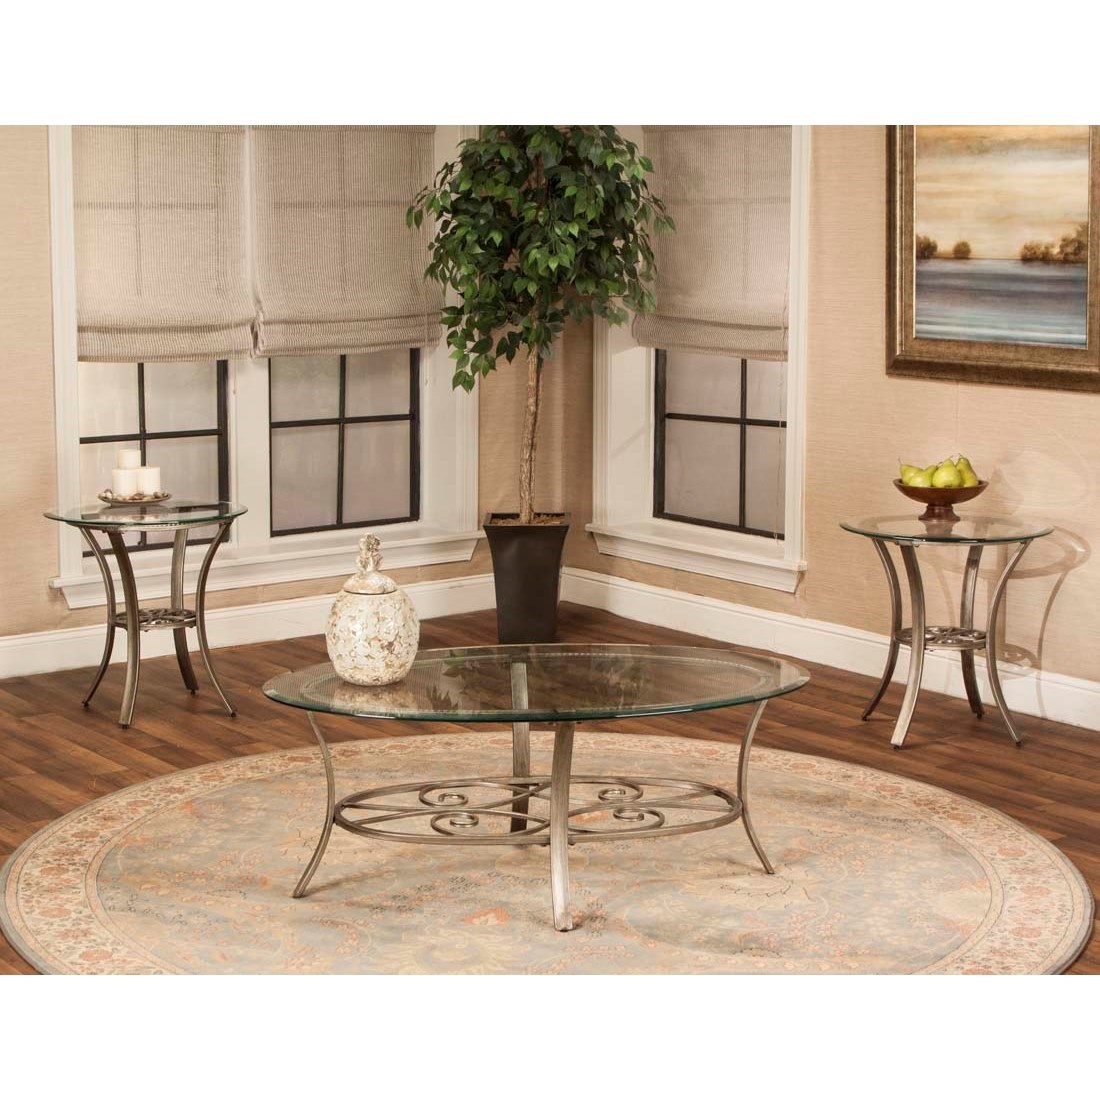 Asti Round Occasional Table 3-Pack by Cramco, Inc at Value City Furniture